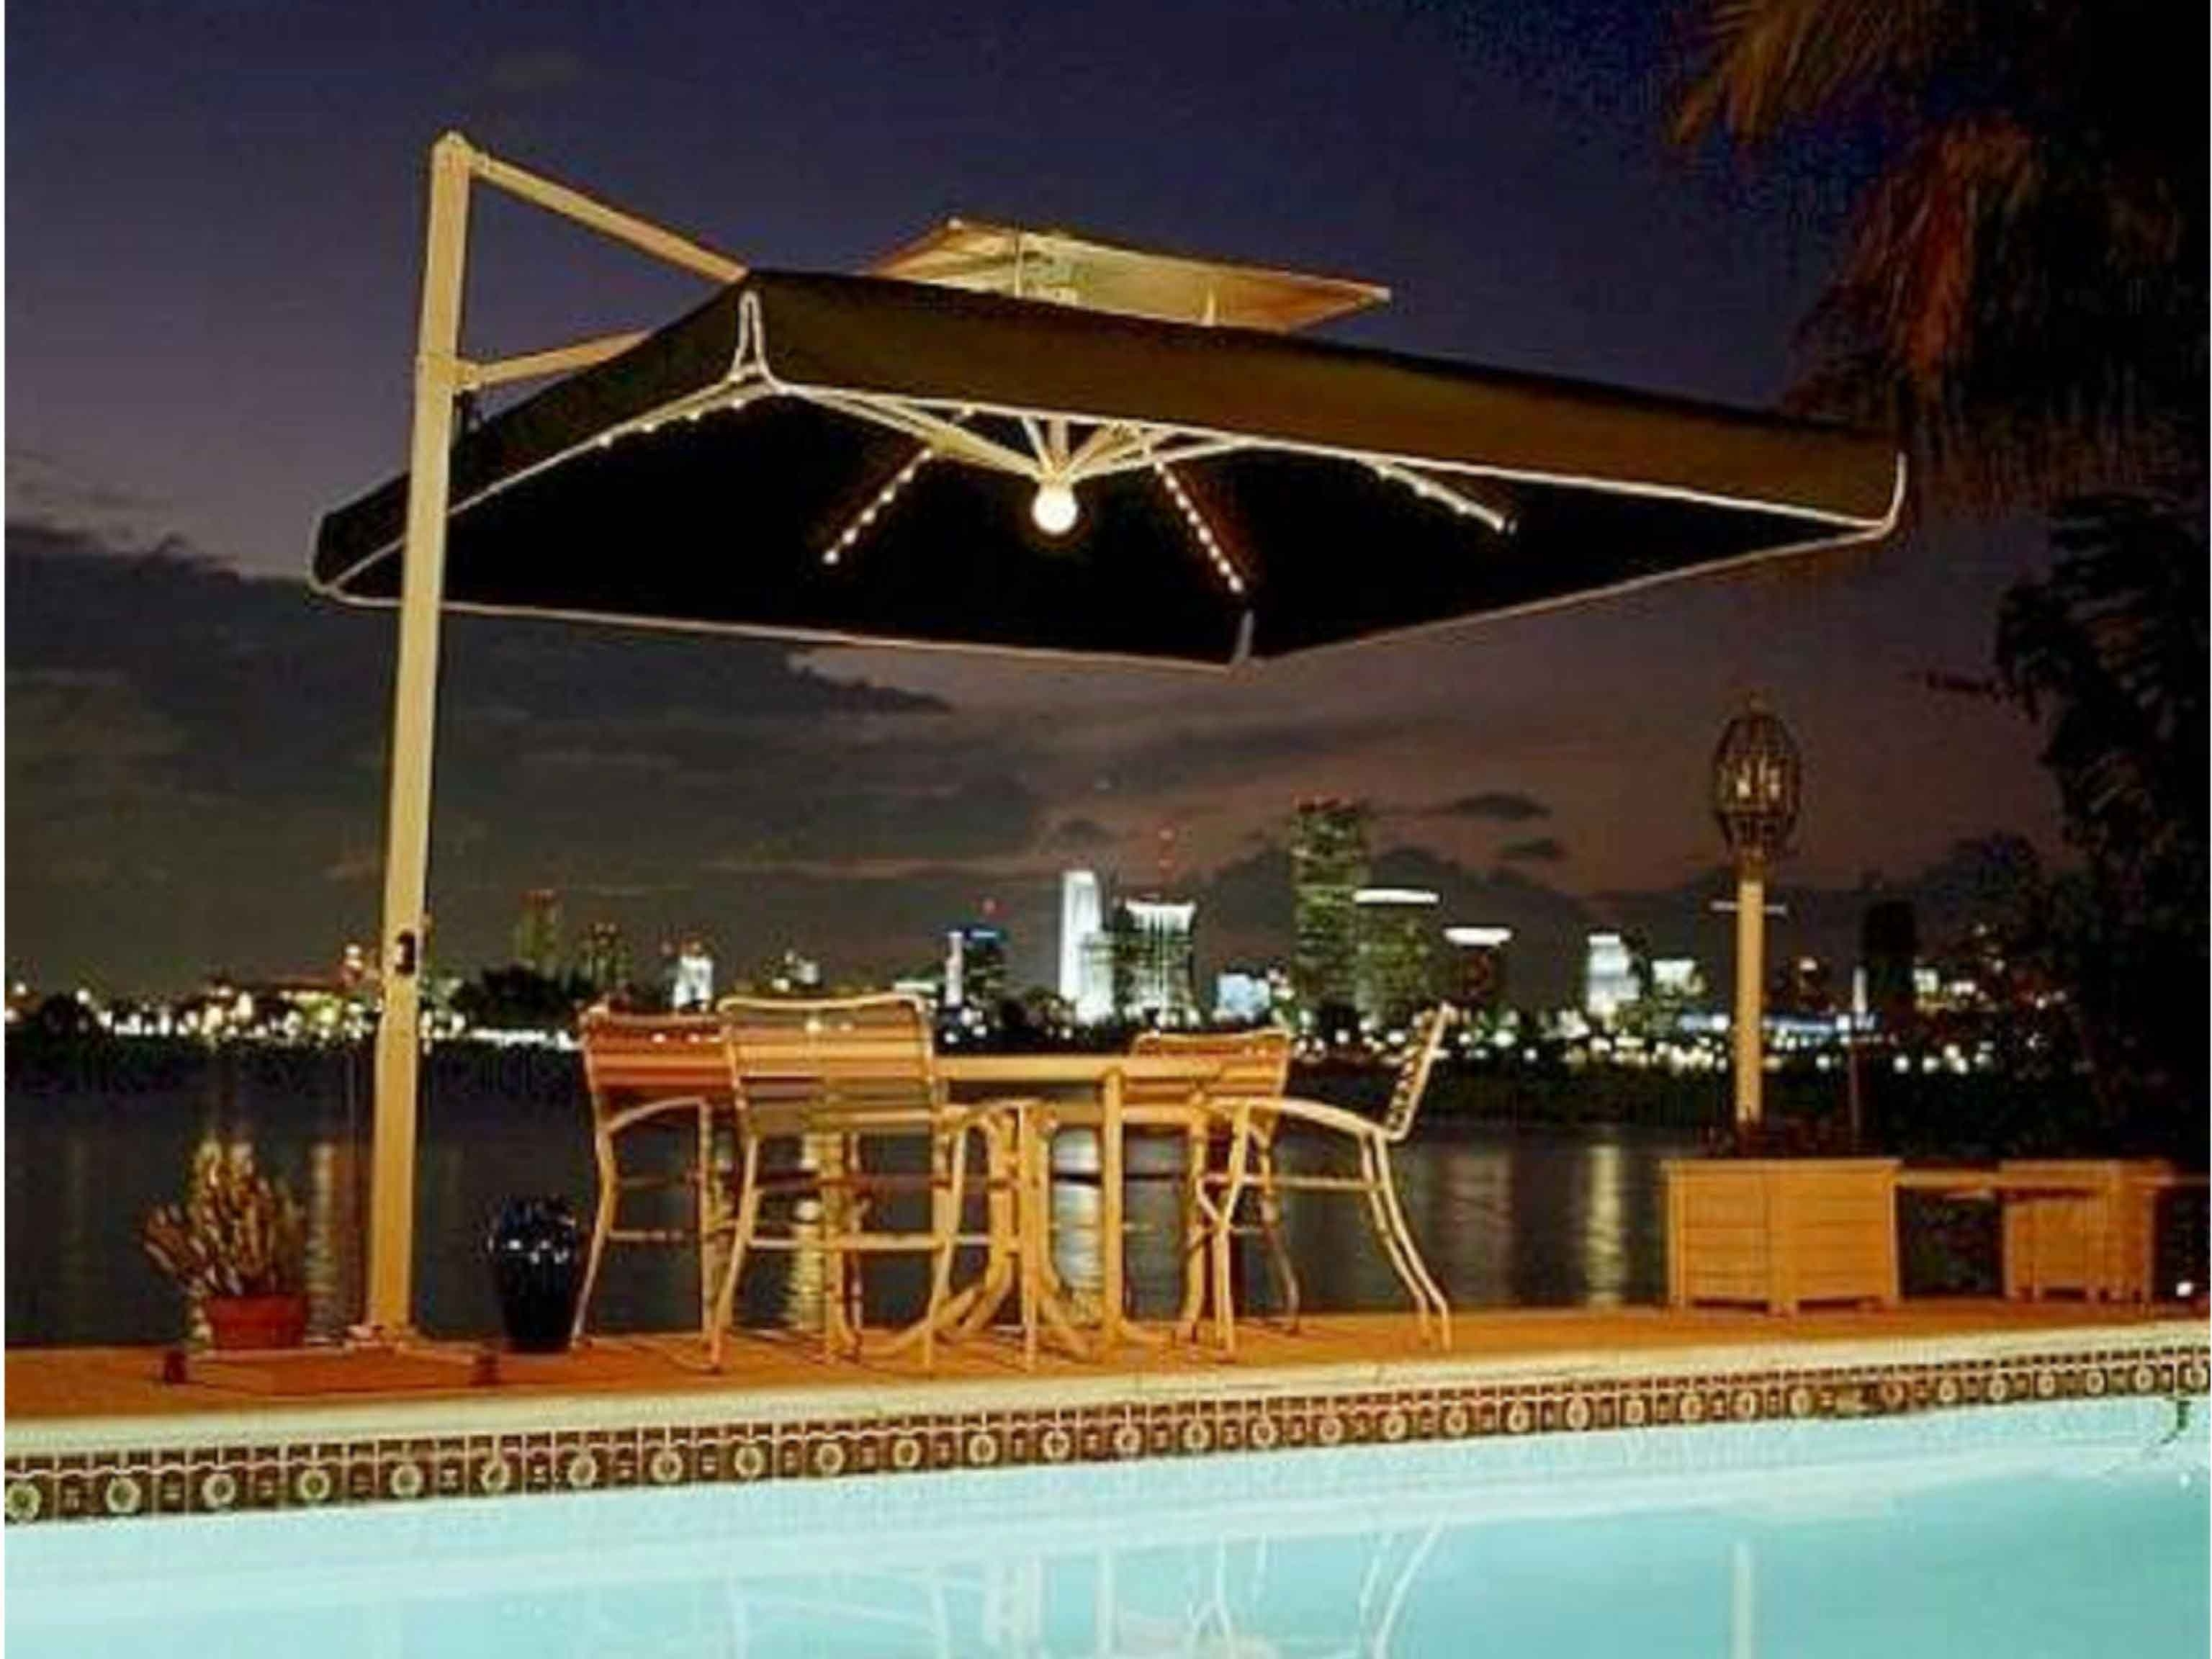 Well Known Patio Umbrellas With Solar Lights With Regard To Furniture: Patio Umbrellas Home Depot Bedroom Light Bathroom Light (View 20 of 20)